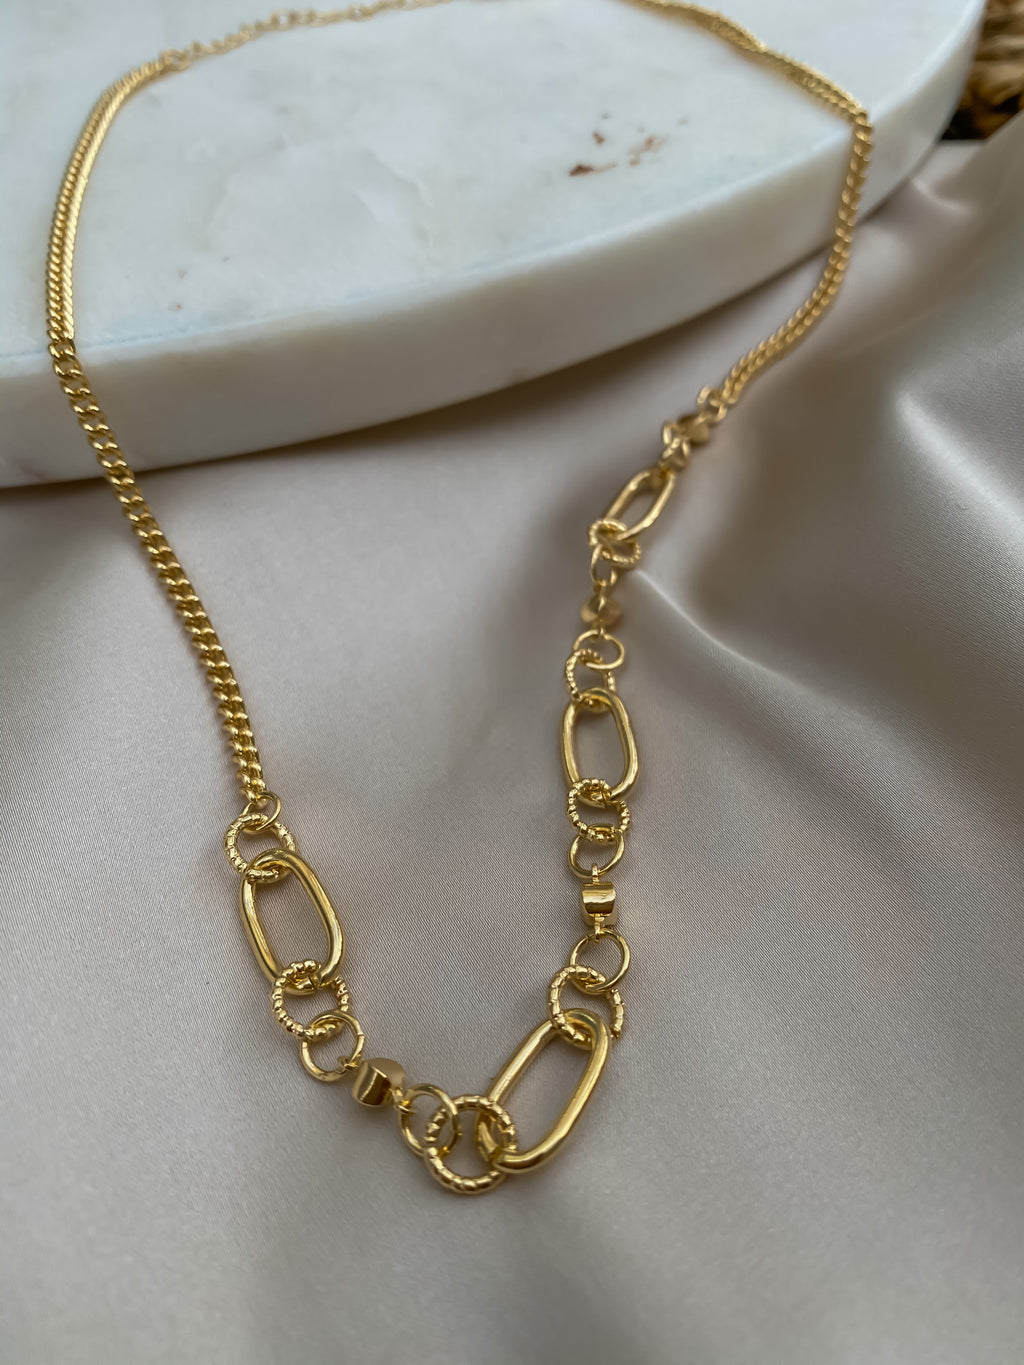 Gold Half Linked Necklace - Stitch And Feather